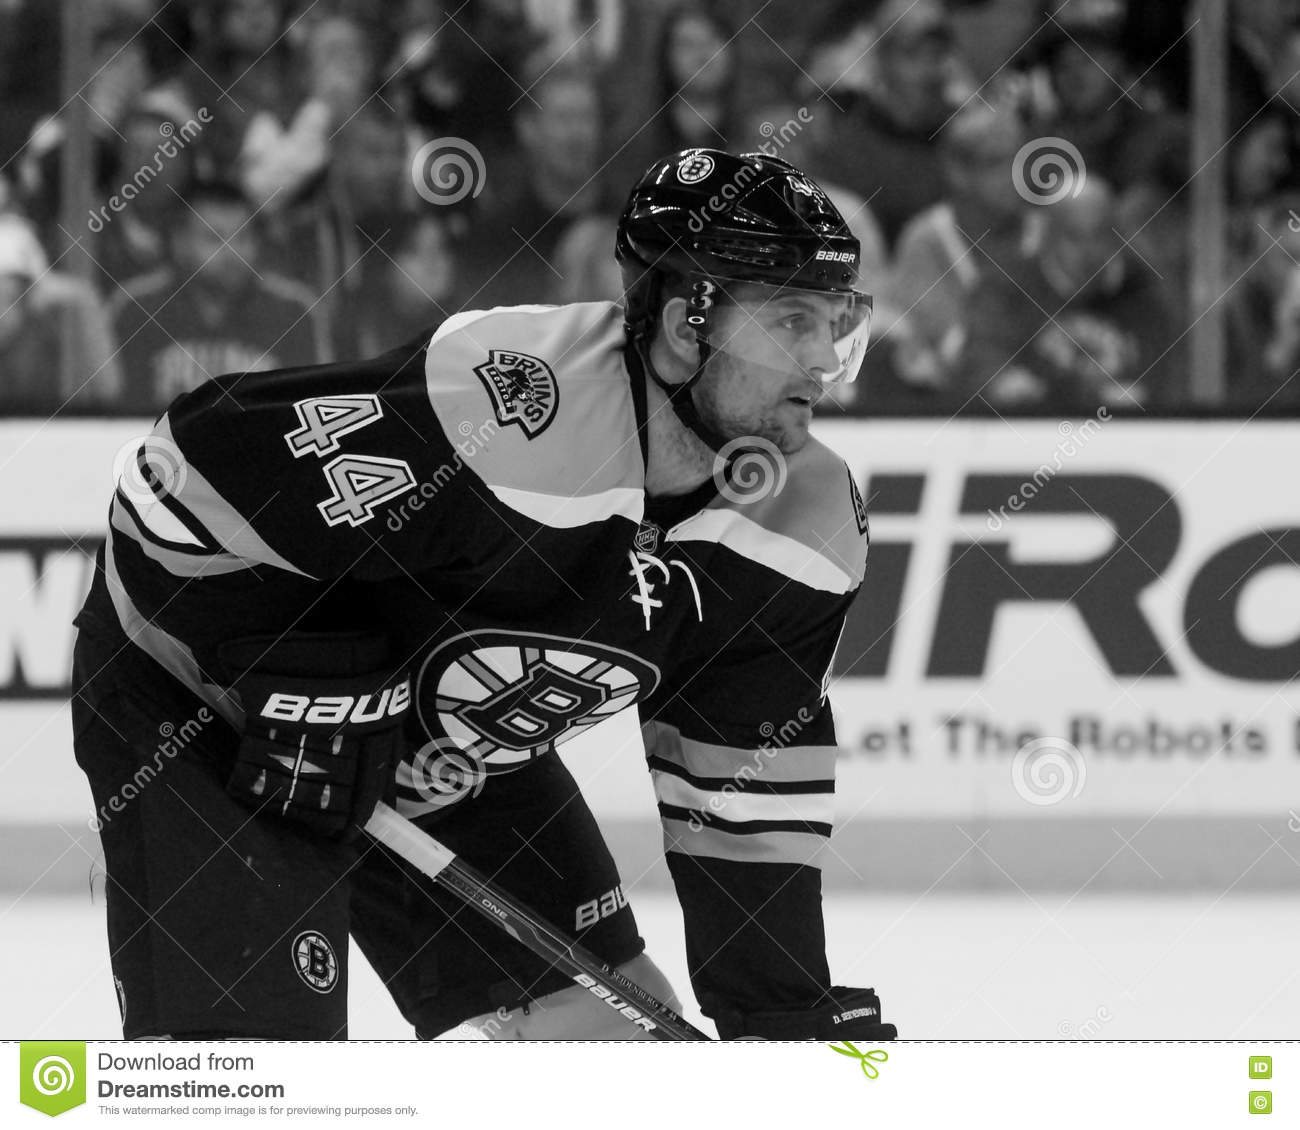 super popular 16955 95f56 Dennis Seidenberg, Defenseman, Boston Bruins Editorial ...